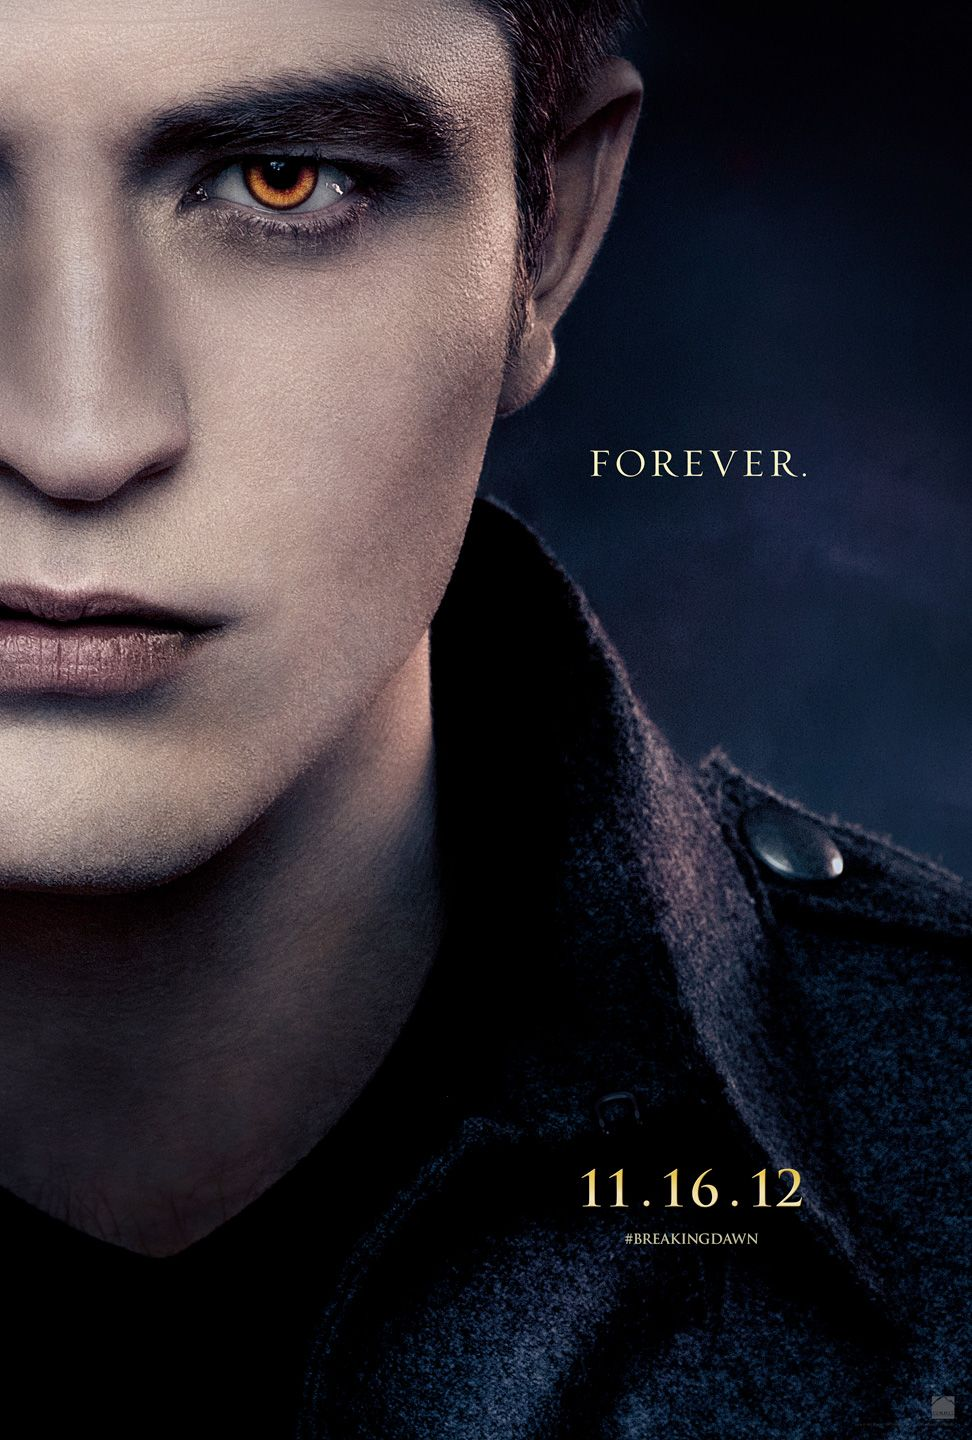 Breaking Dawn: Part 2 | Nov. 16, 2012 #TeamEdward Is it sad how excited I still am about this?